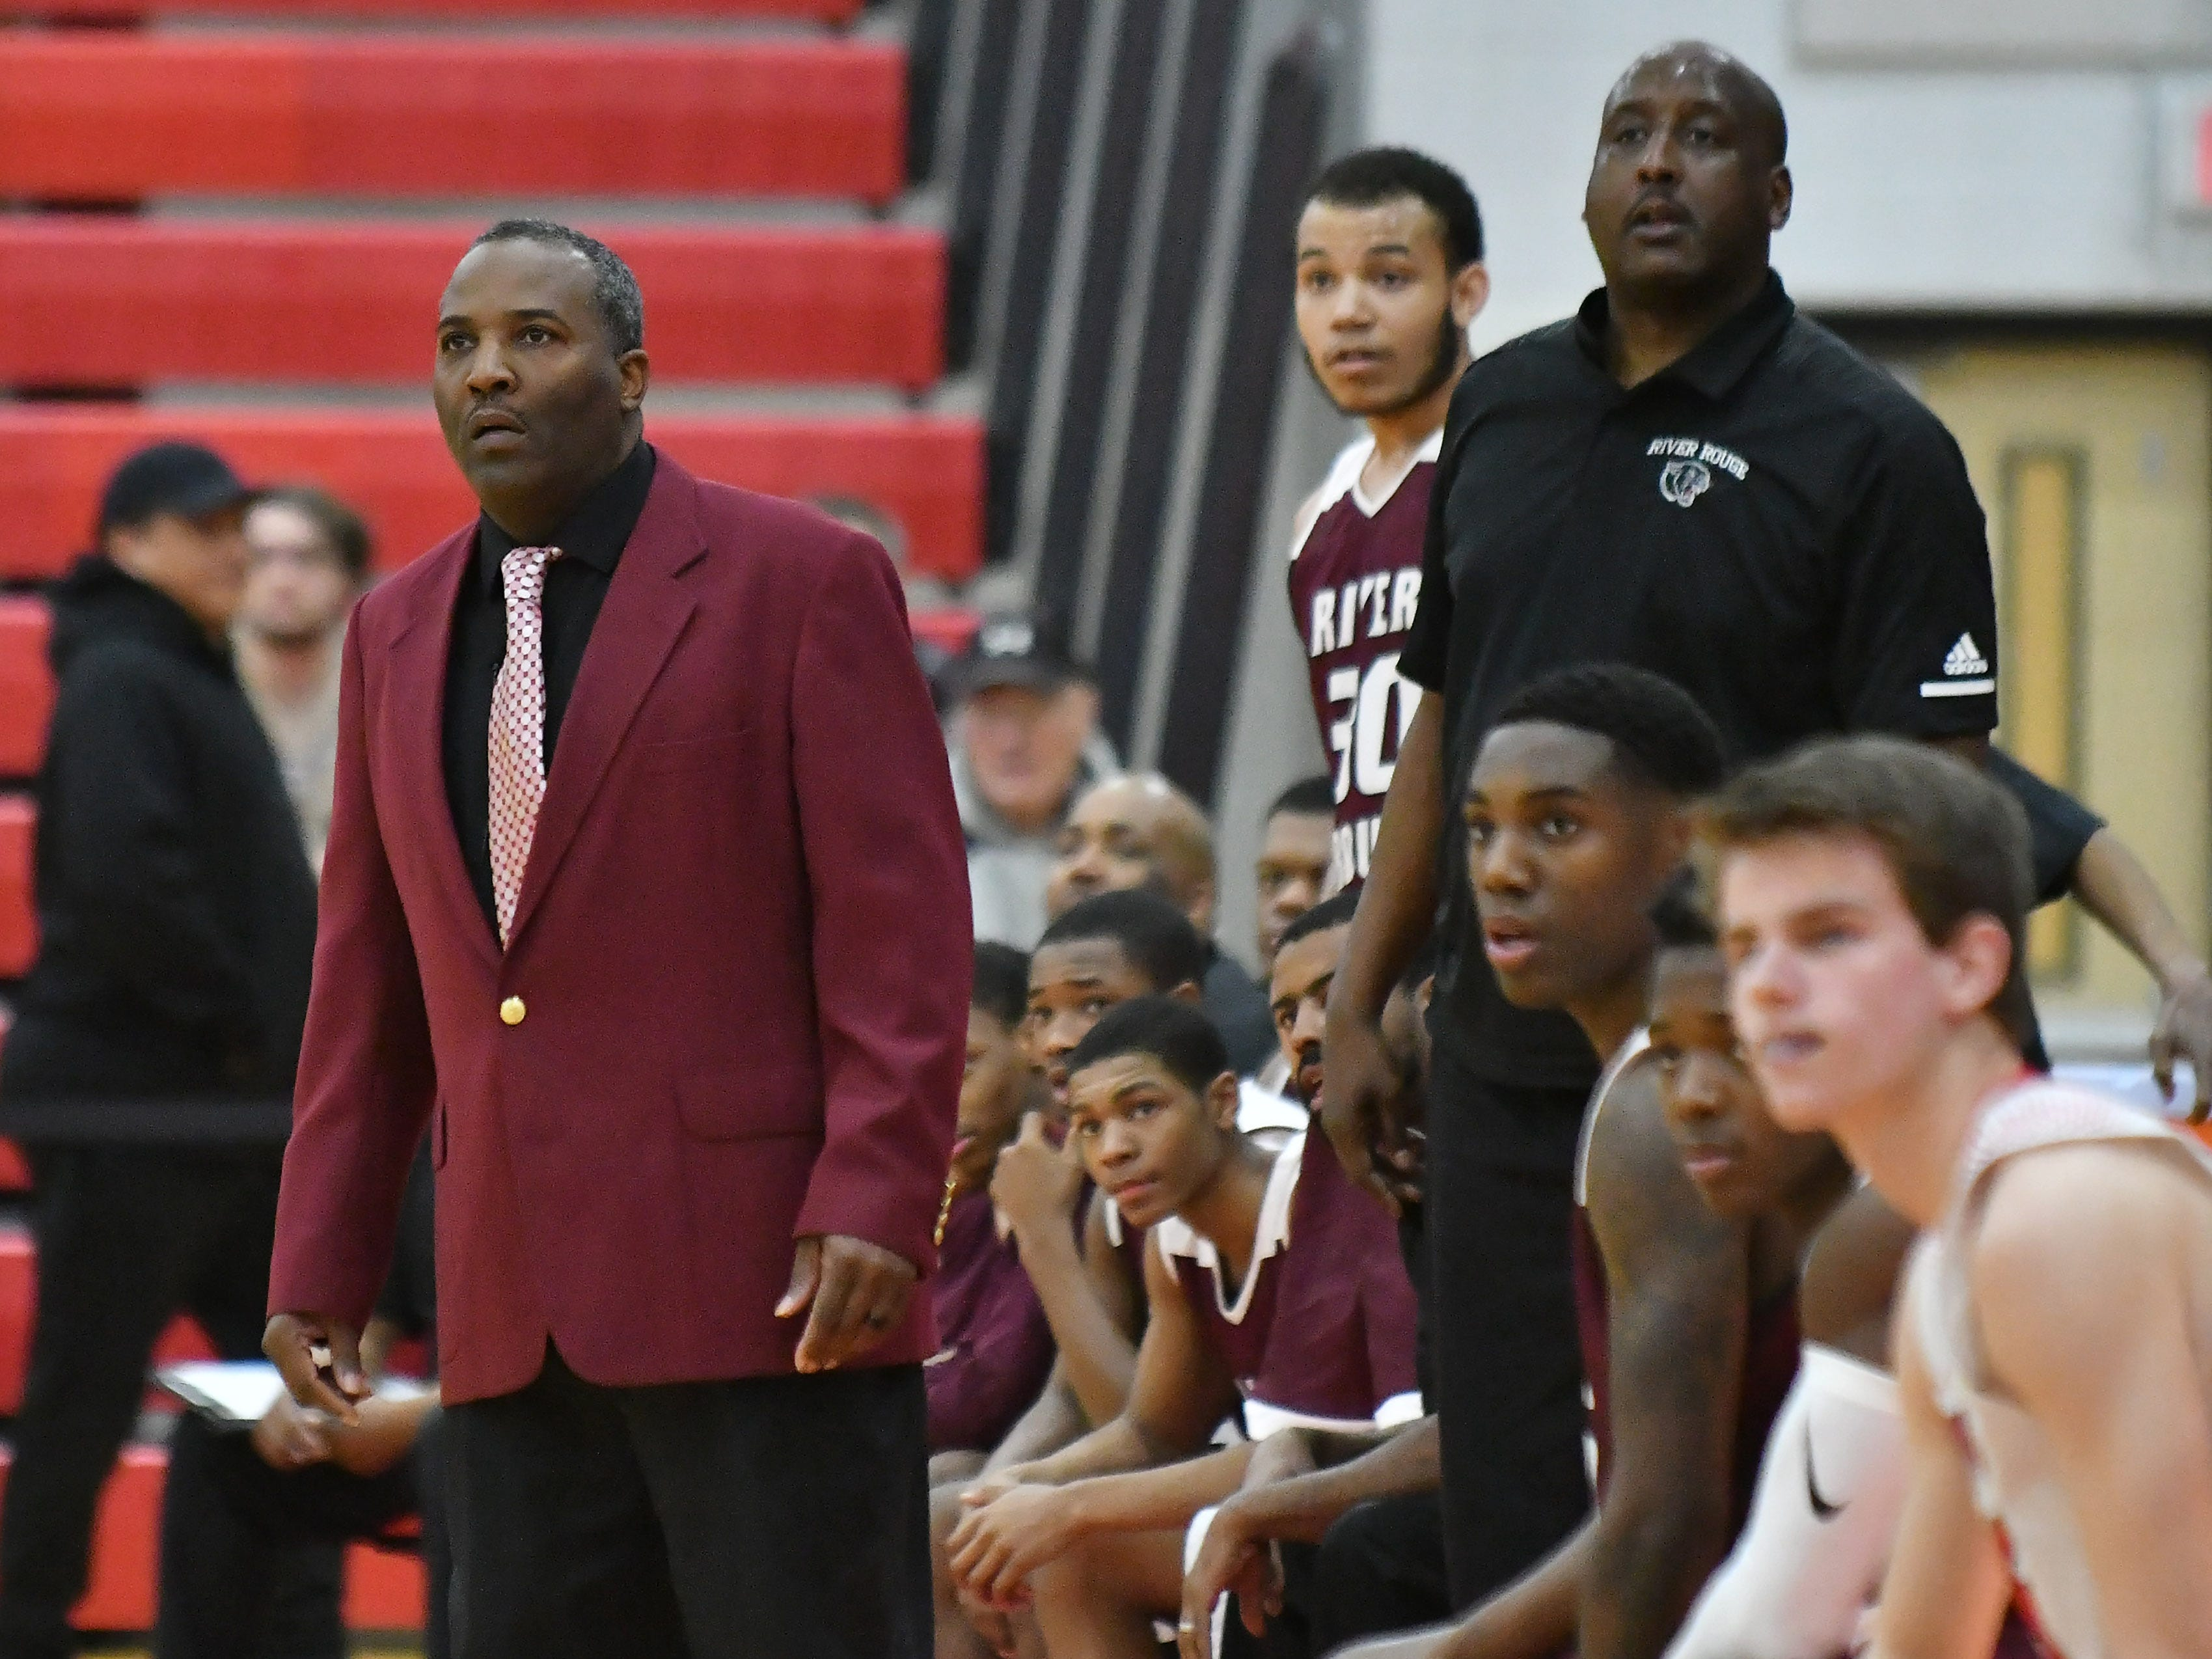 River Rouge head coach LaMonte Stone, left, watches in the first half.